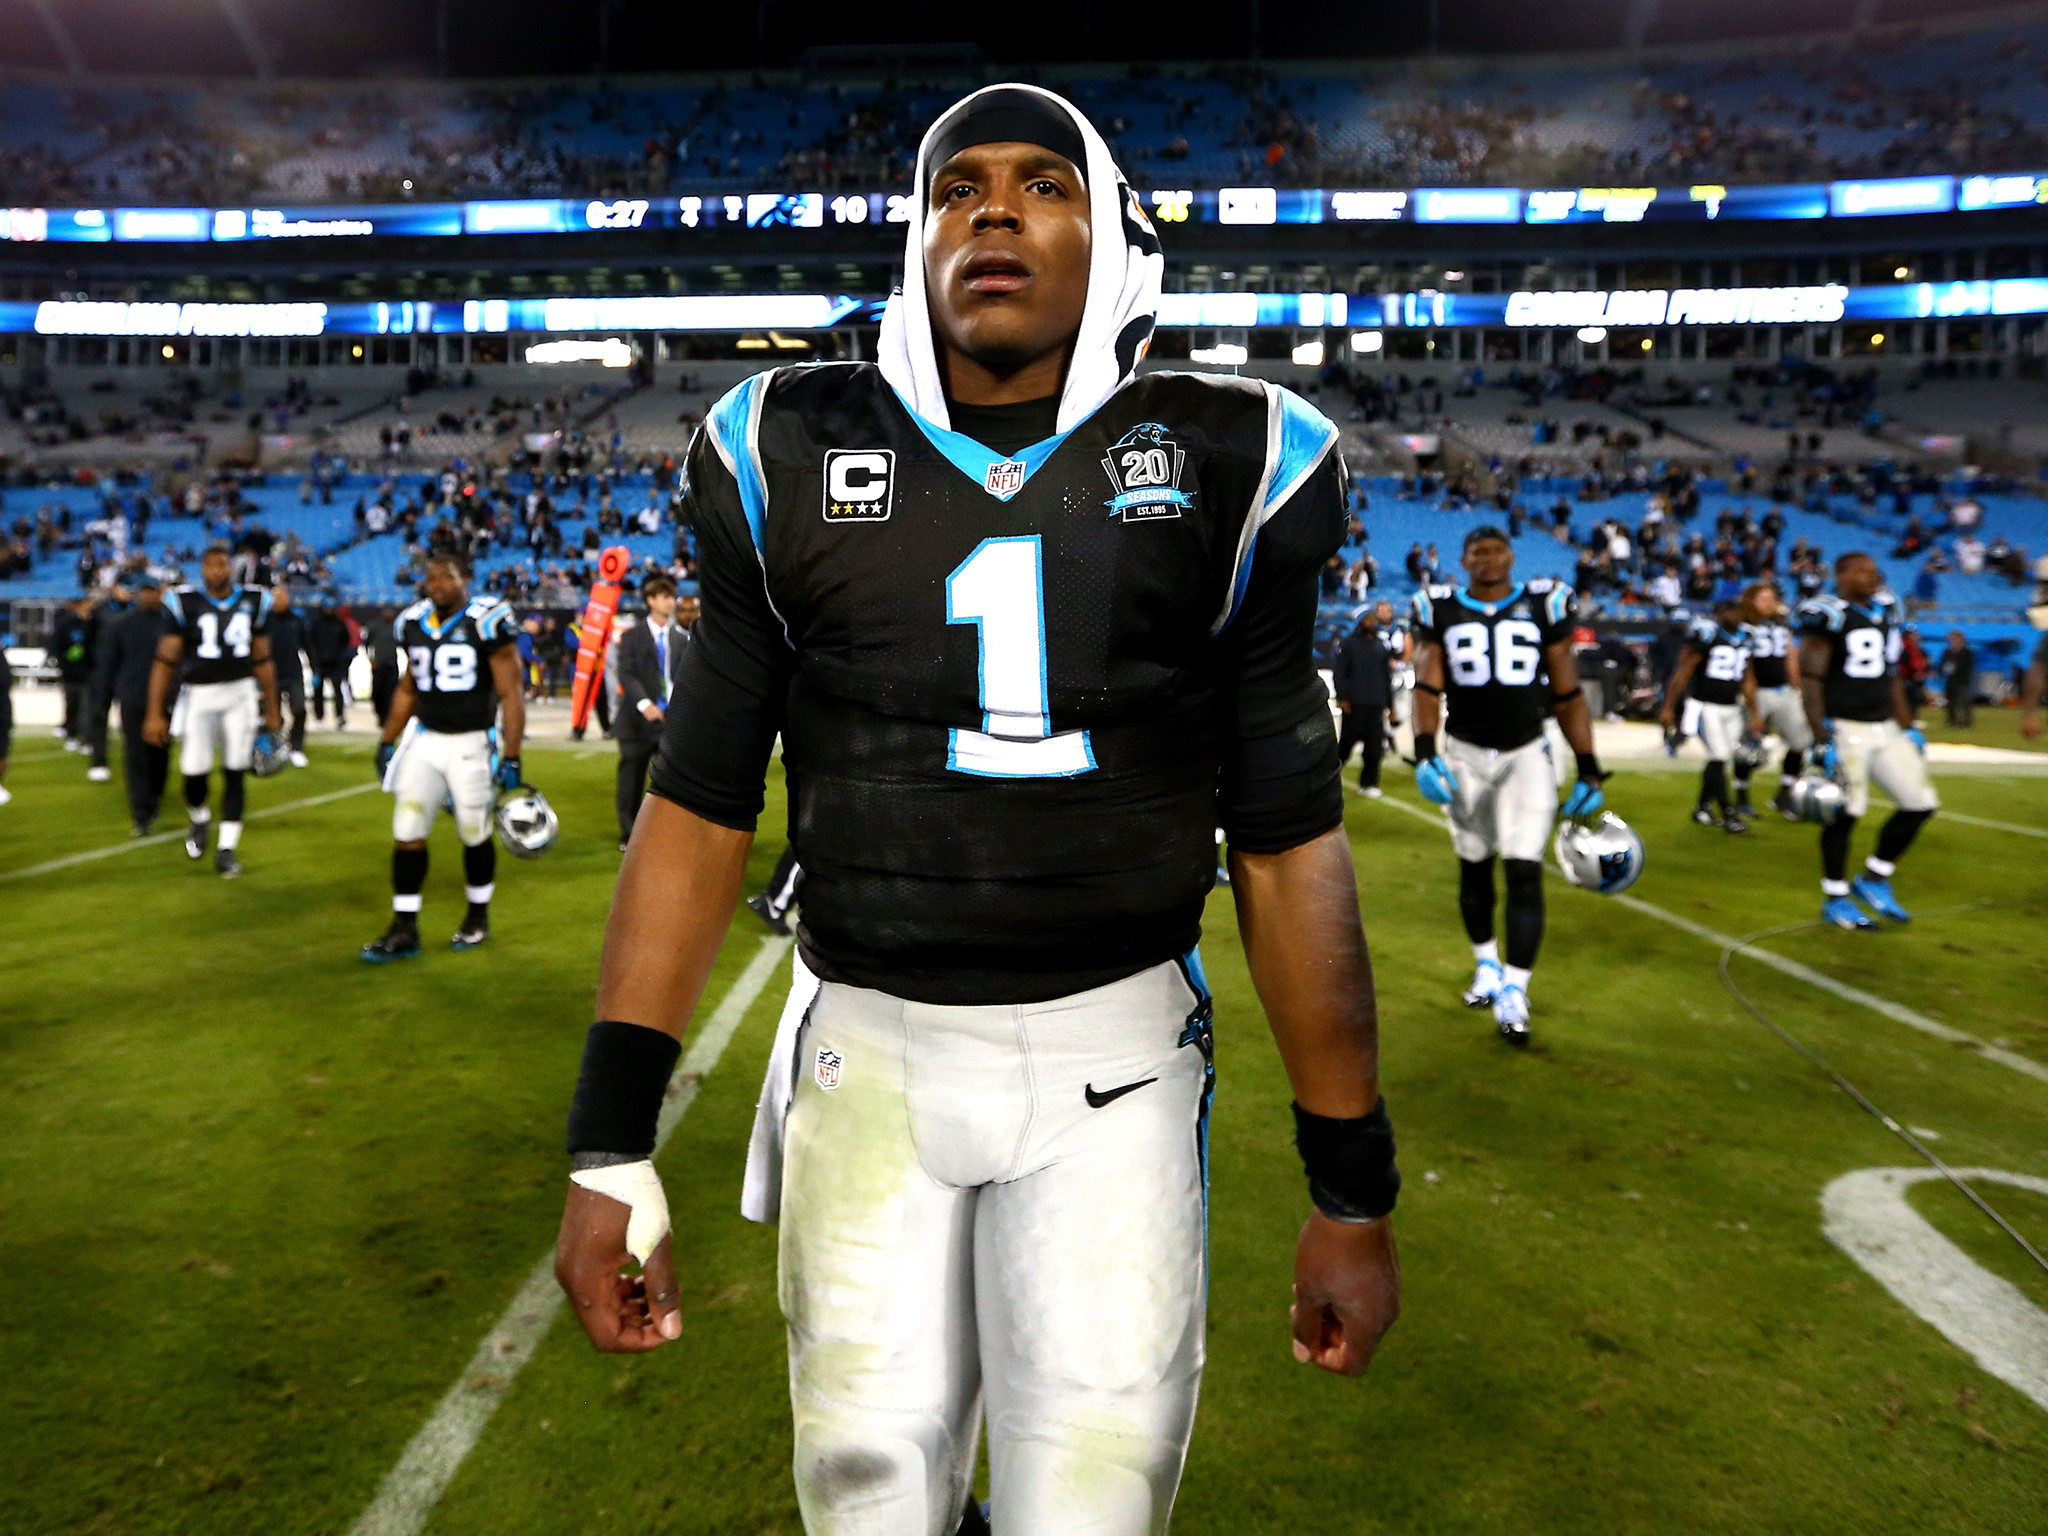 2048x1536 Cam Newton car crash: Carolina Panthers quarterback injured after accident  | The Independent